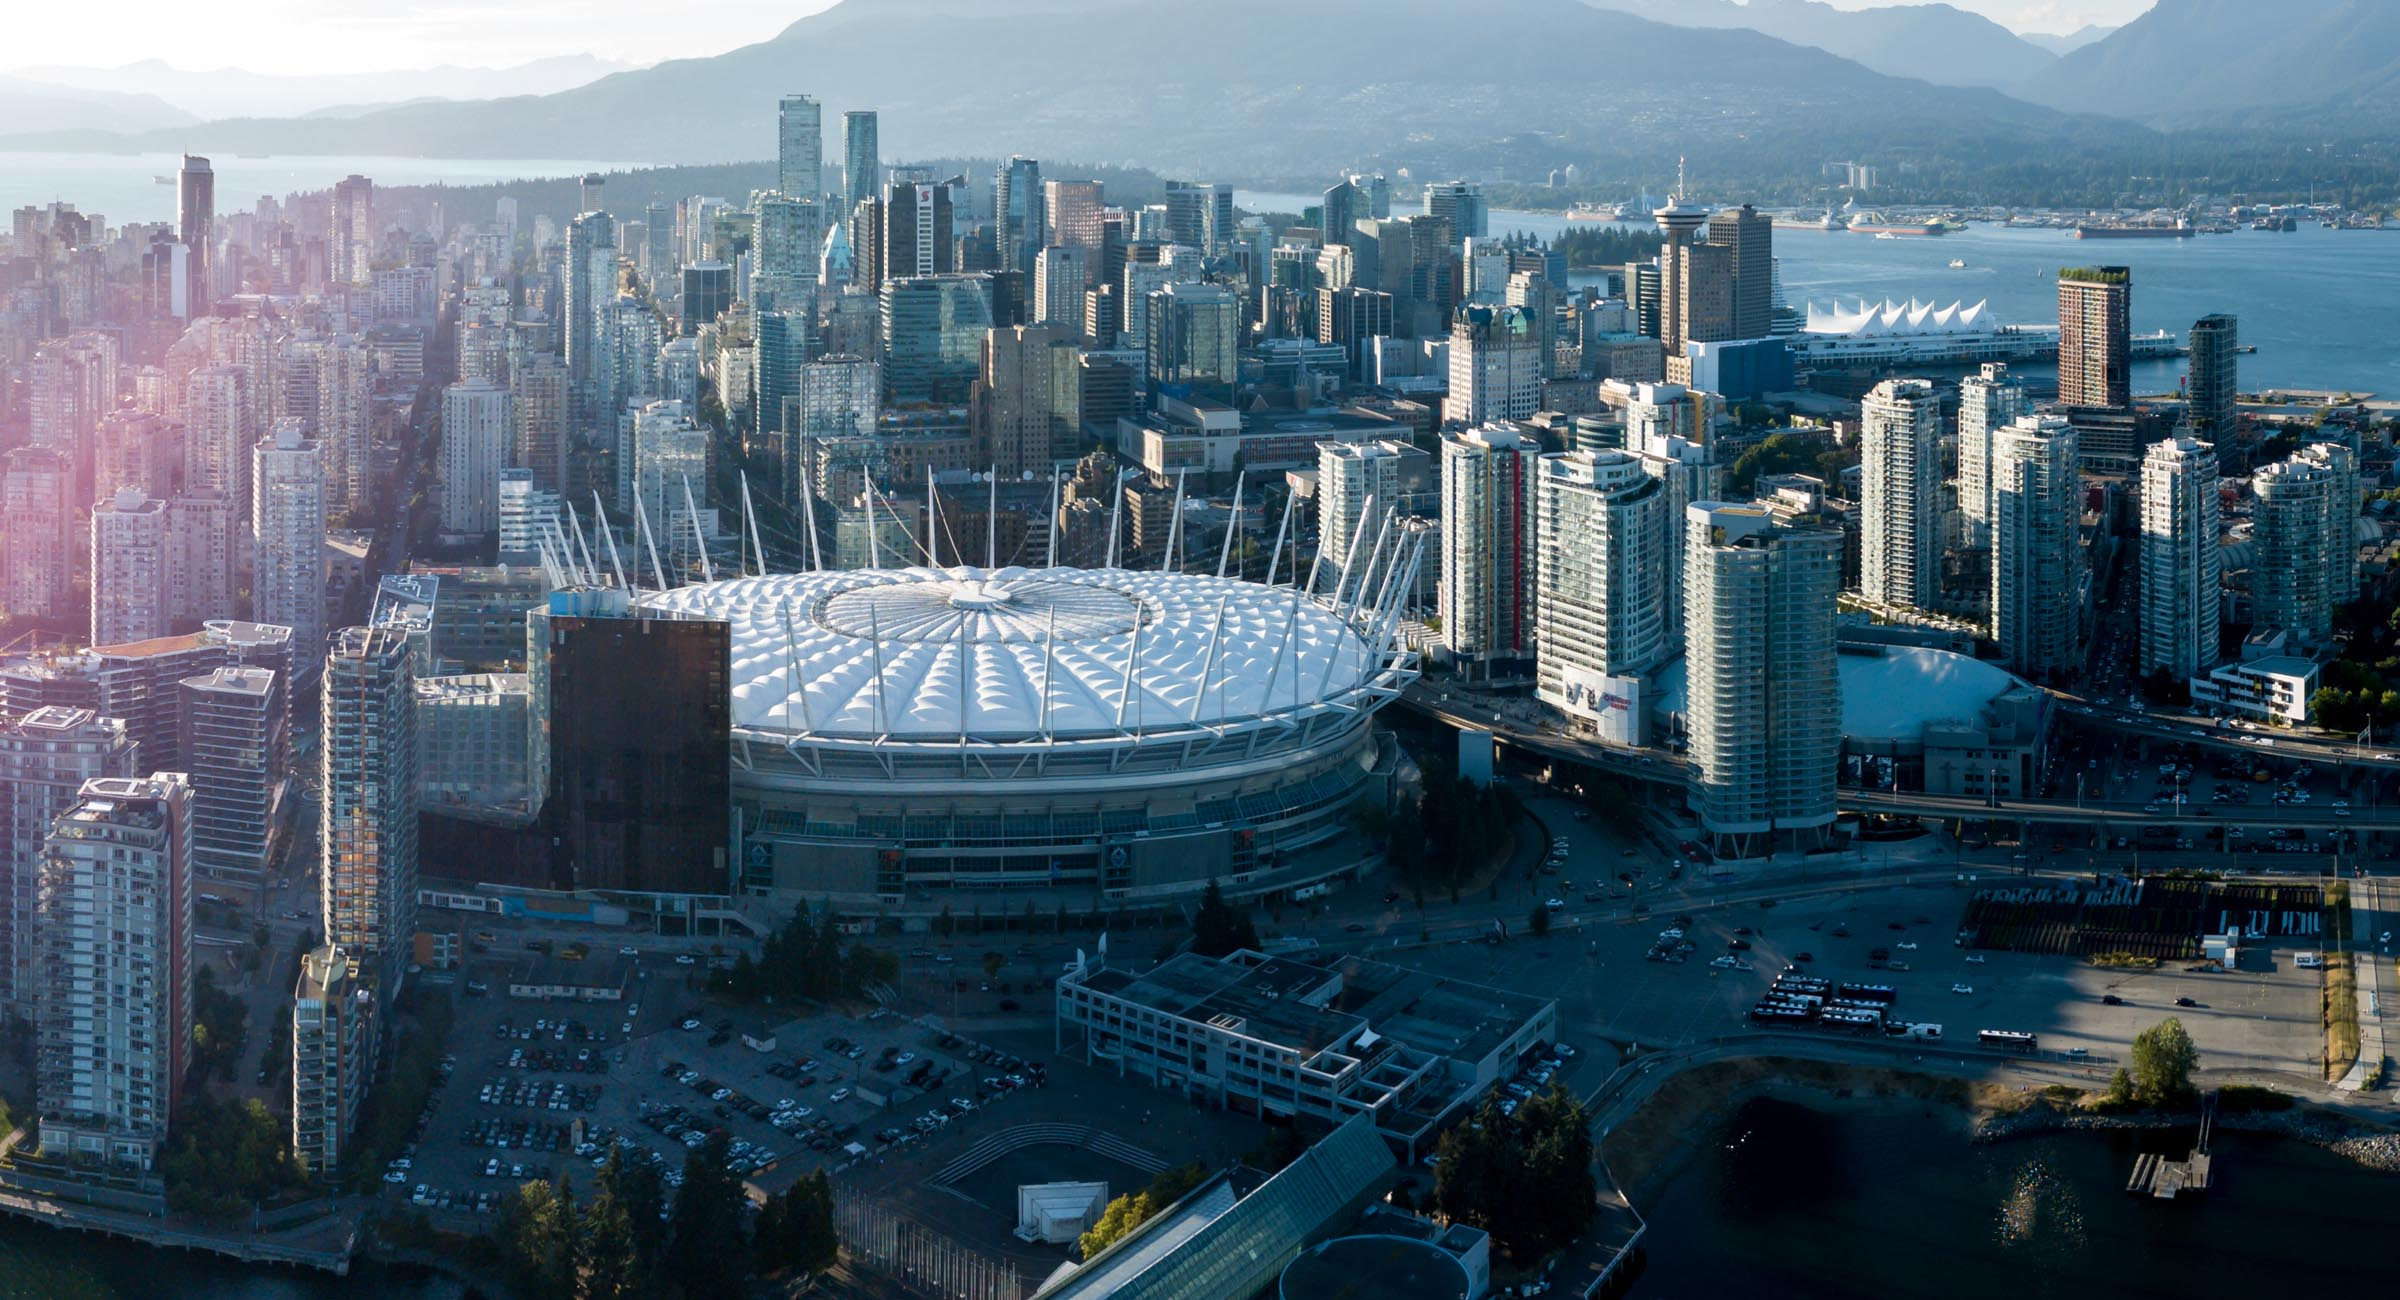 images_0000_Vancouver